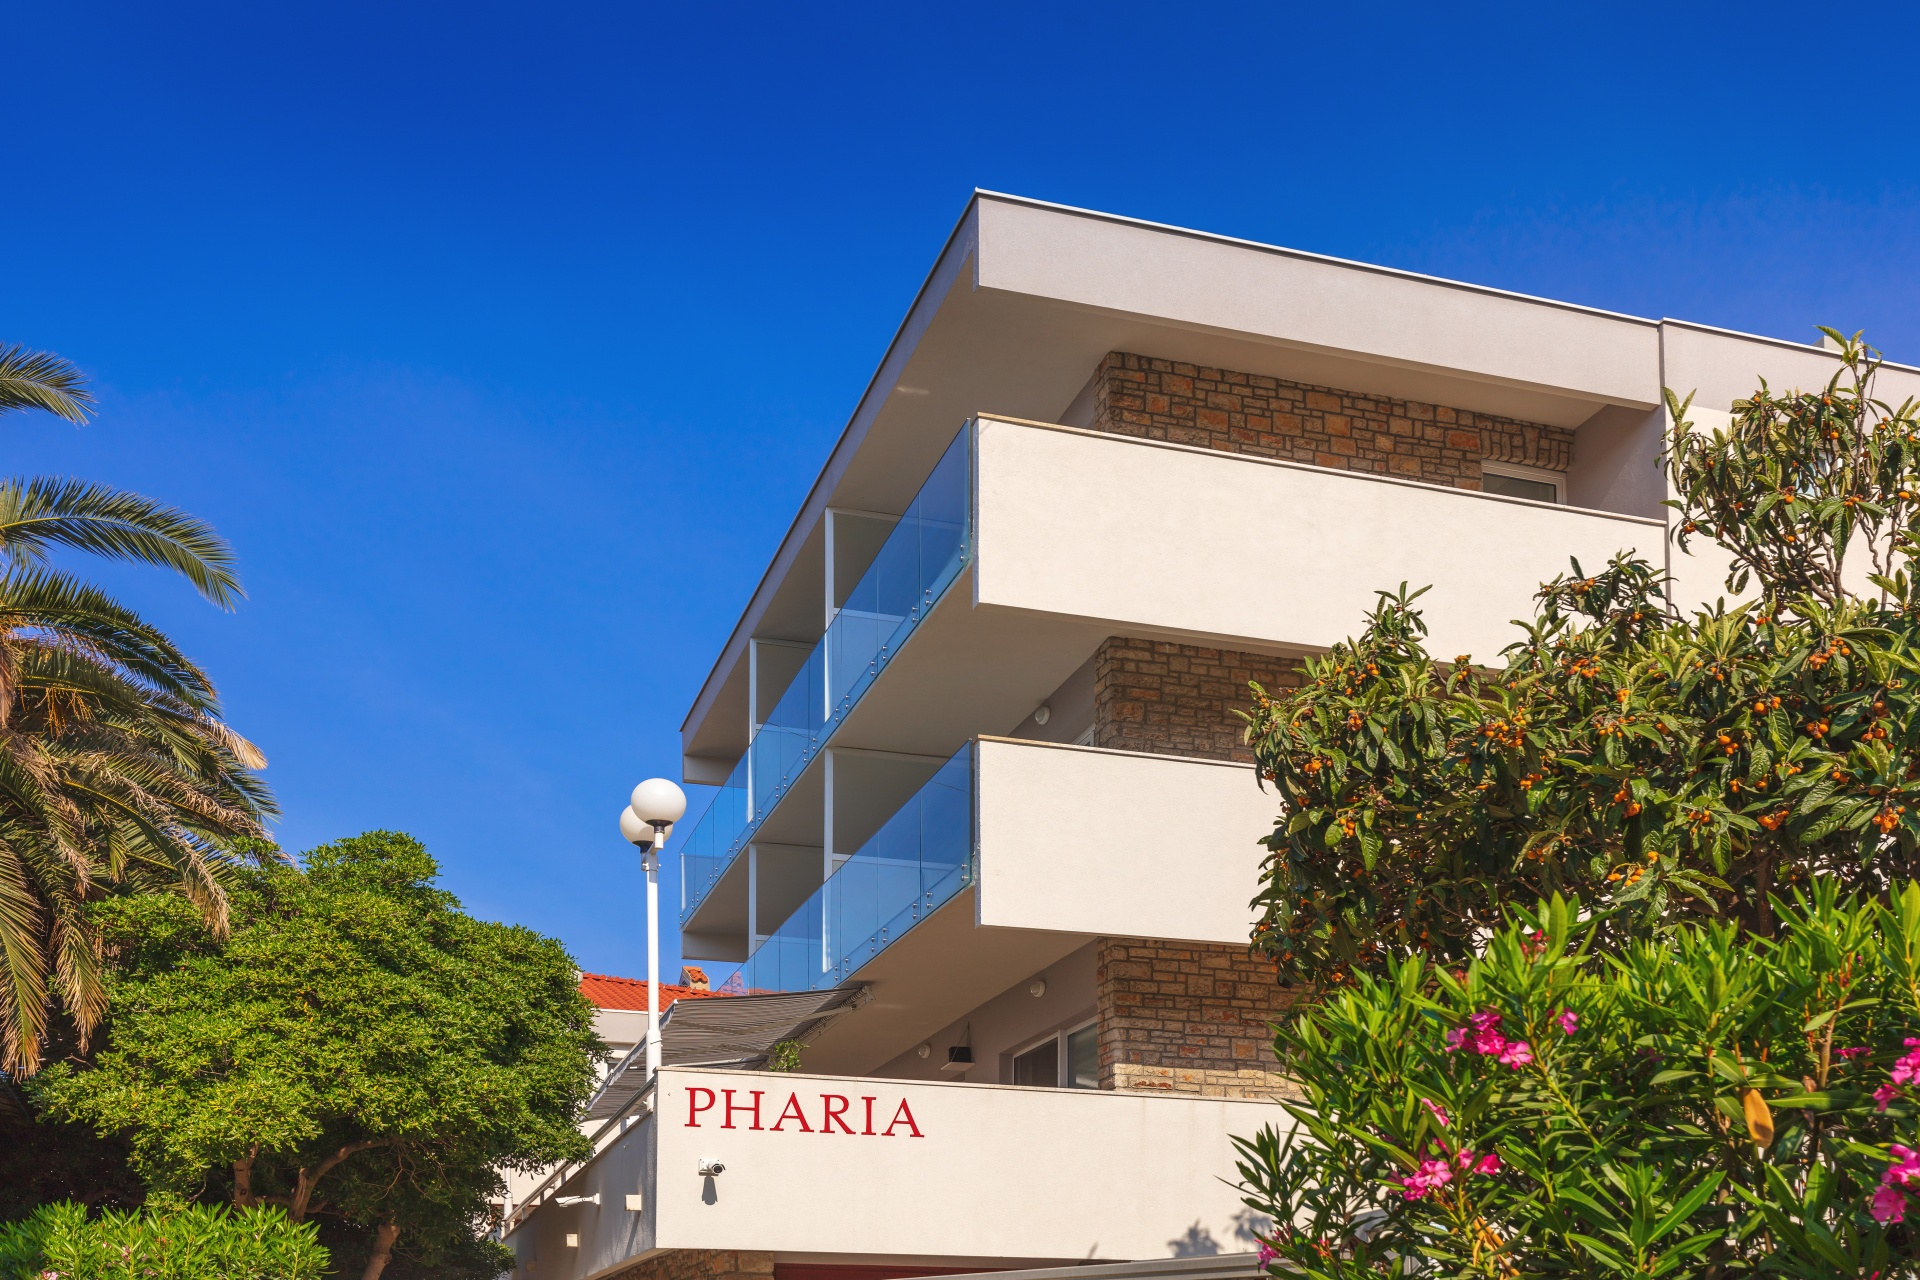 Hotel Pharia Hvar main building